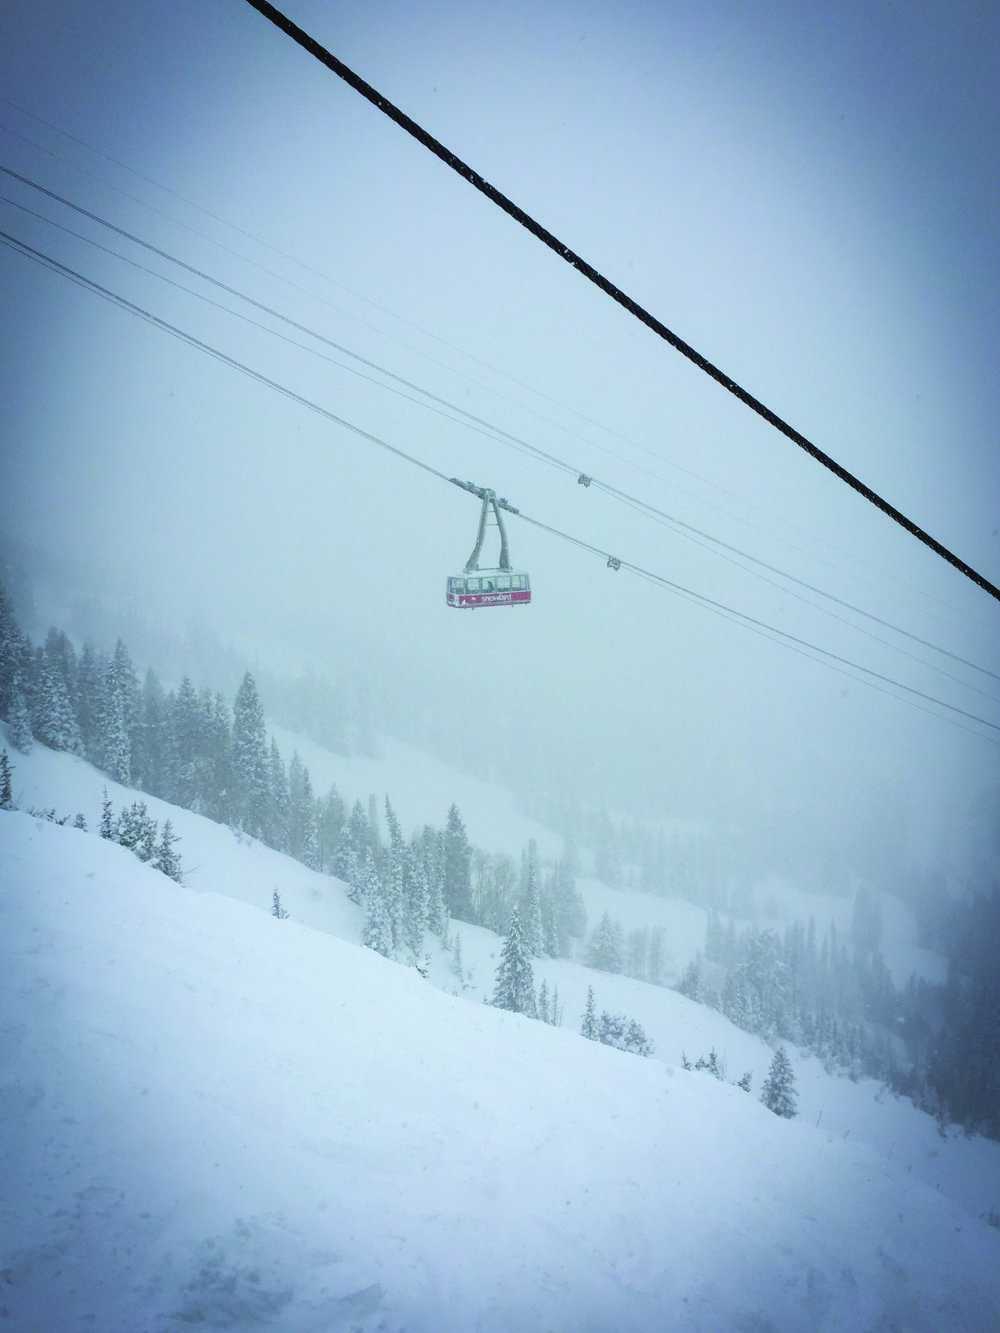 The aerial tram at Snowbird Ski Resort glides past on a powder day. Photo Neill Pieper